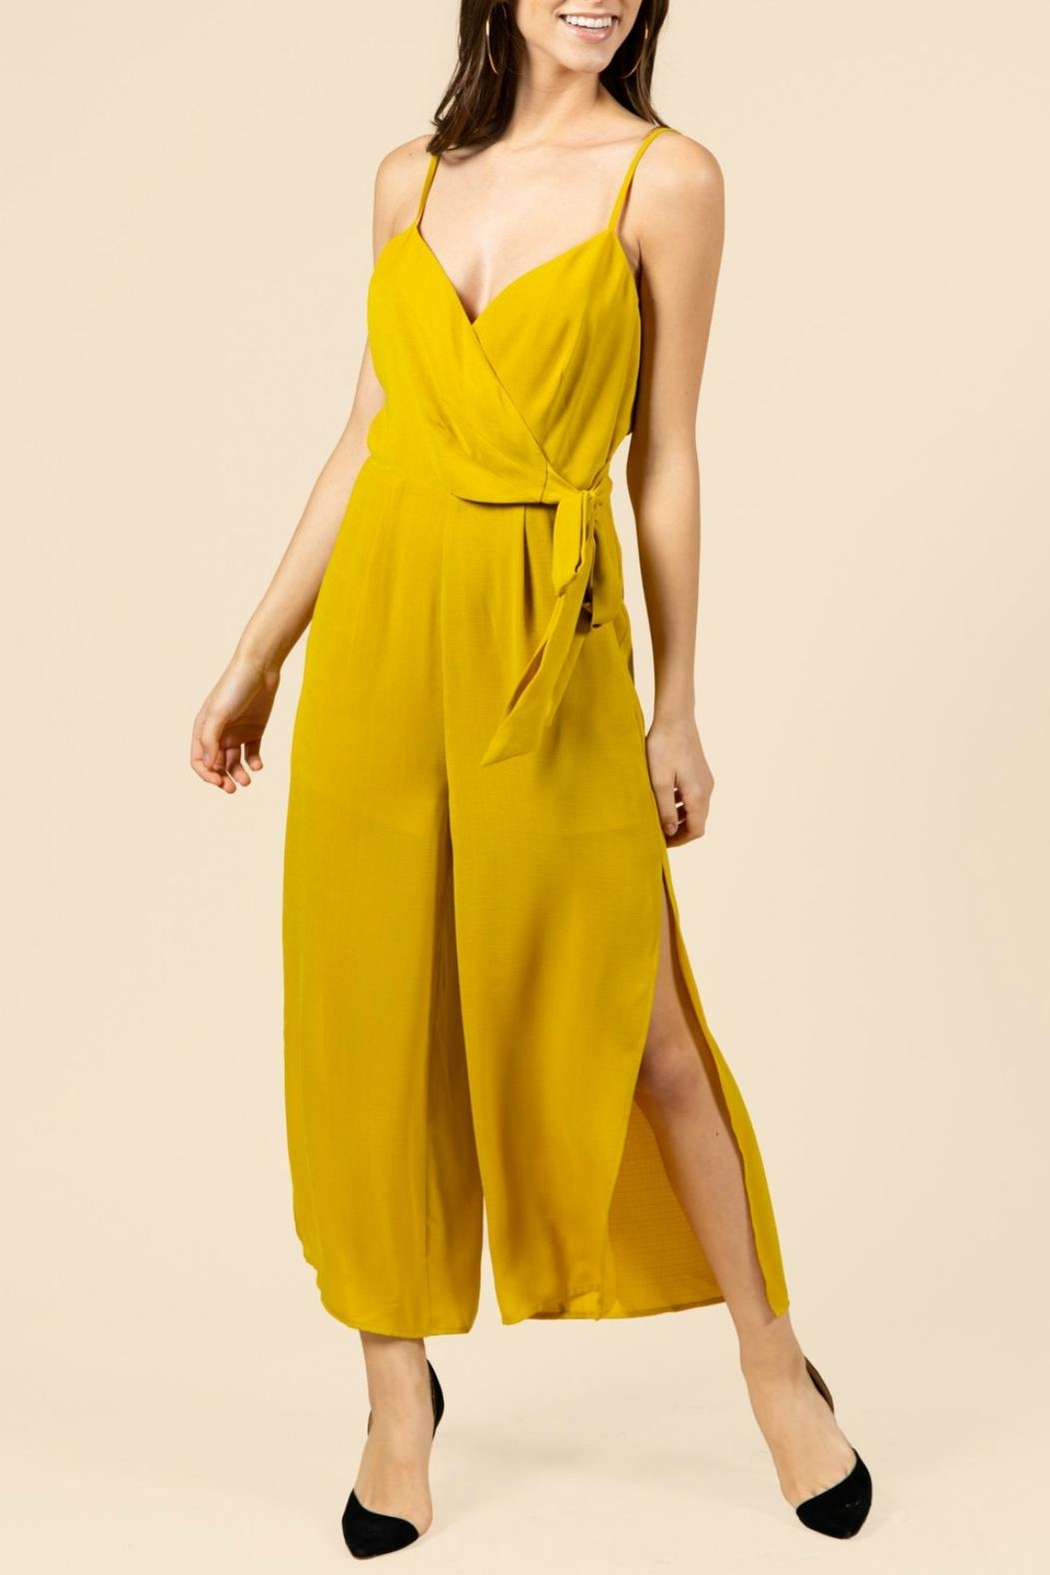 Pretty Little Things Curry Yellow Jumpsuit - Main Image